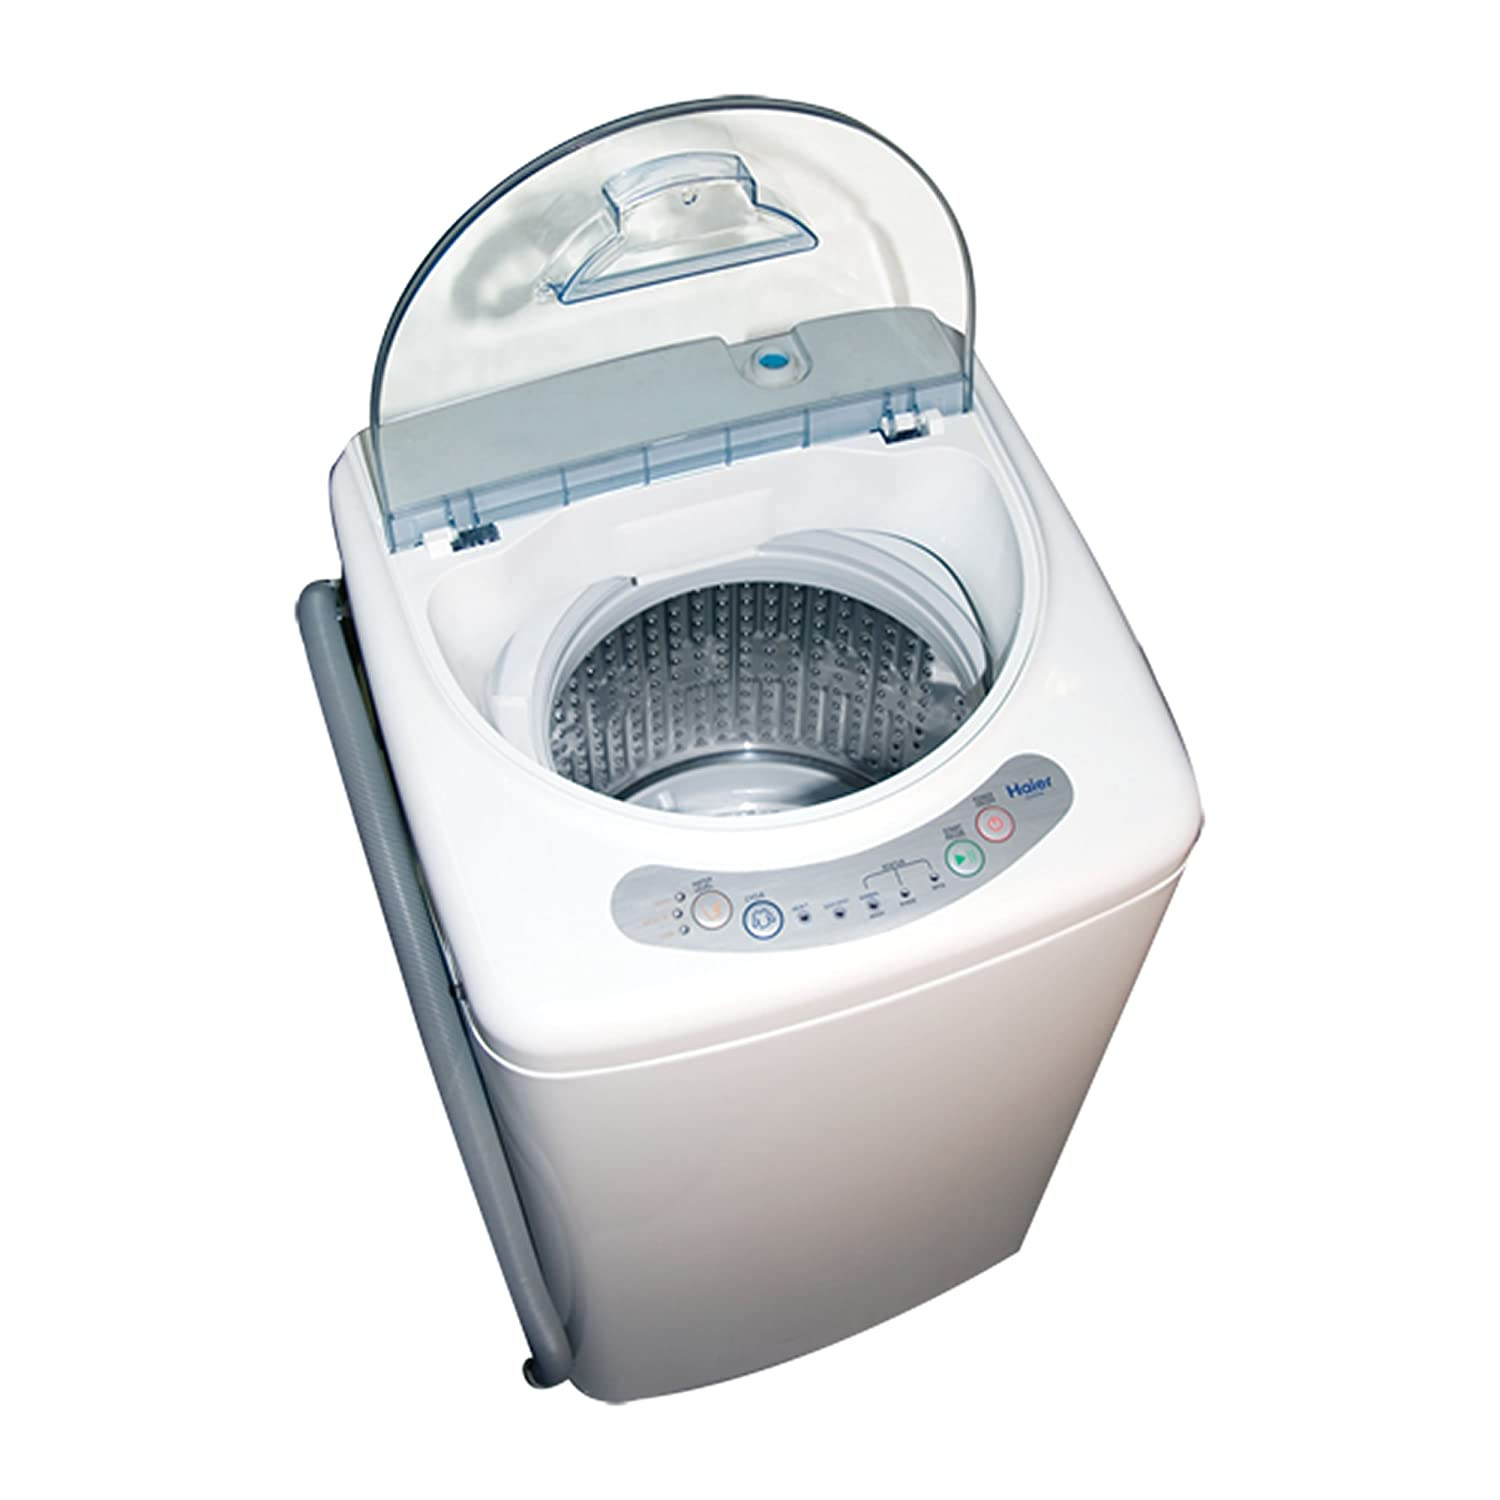 Mini Washing Machine ~ A mini washing machine for your living space